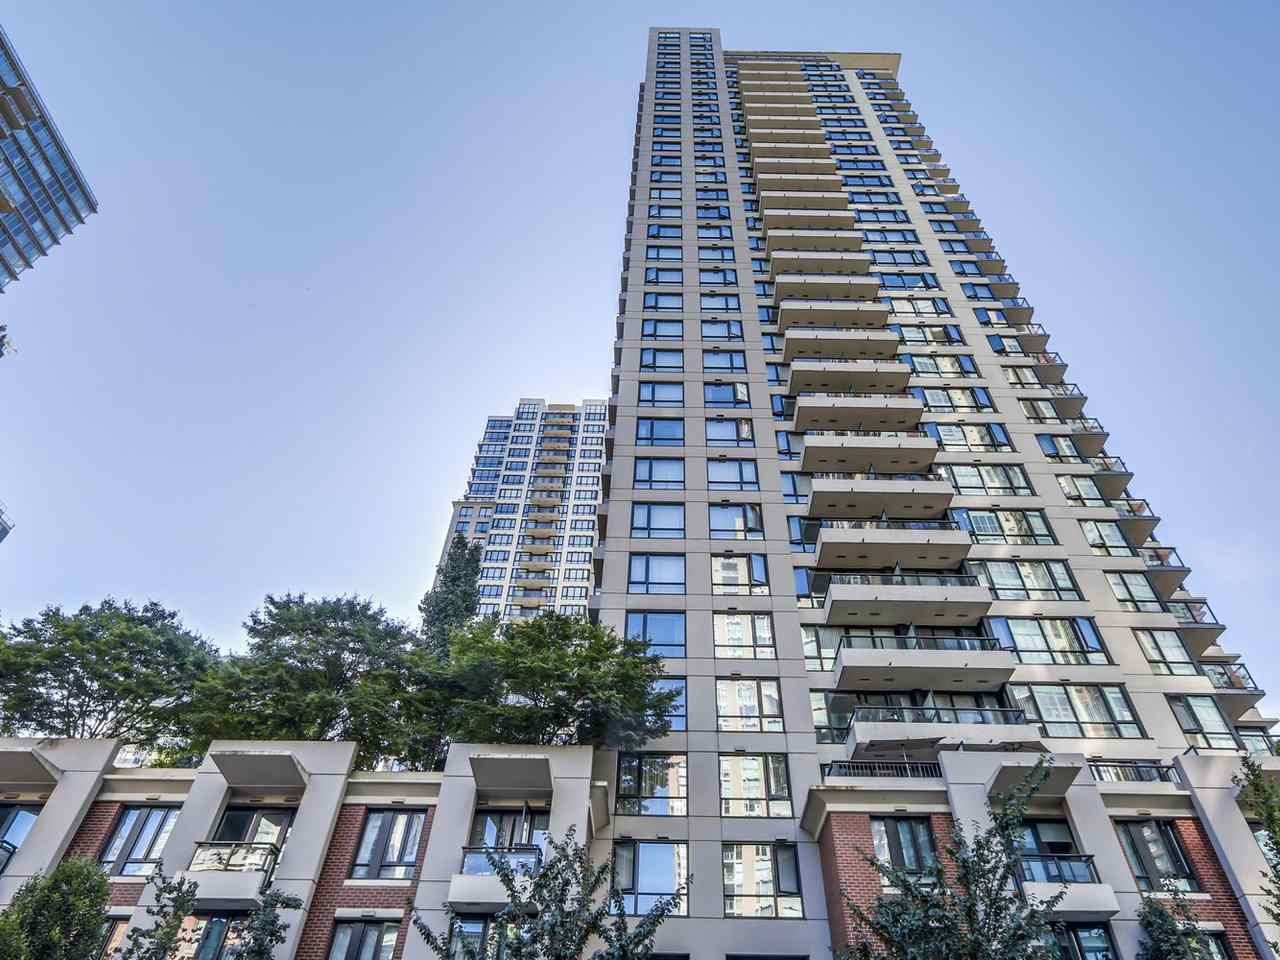 Main Photo: 2405 928 HOMER STREET in Vancouver: Yaletown Condo for sale (Vancouver West)  : MLS® # R2103981